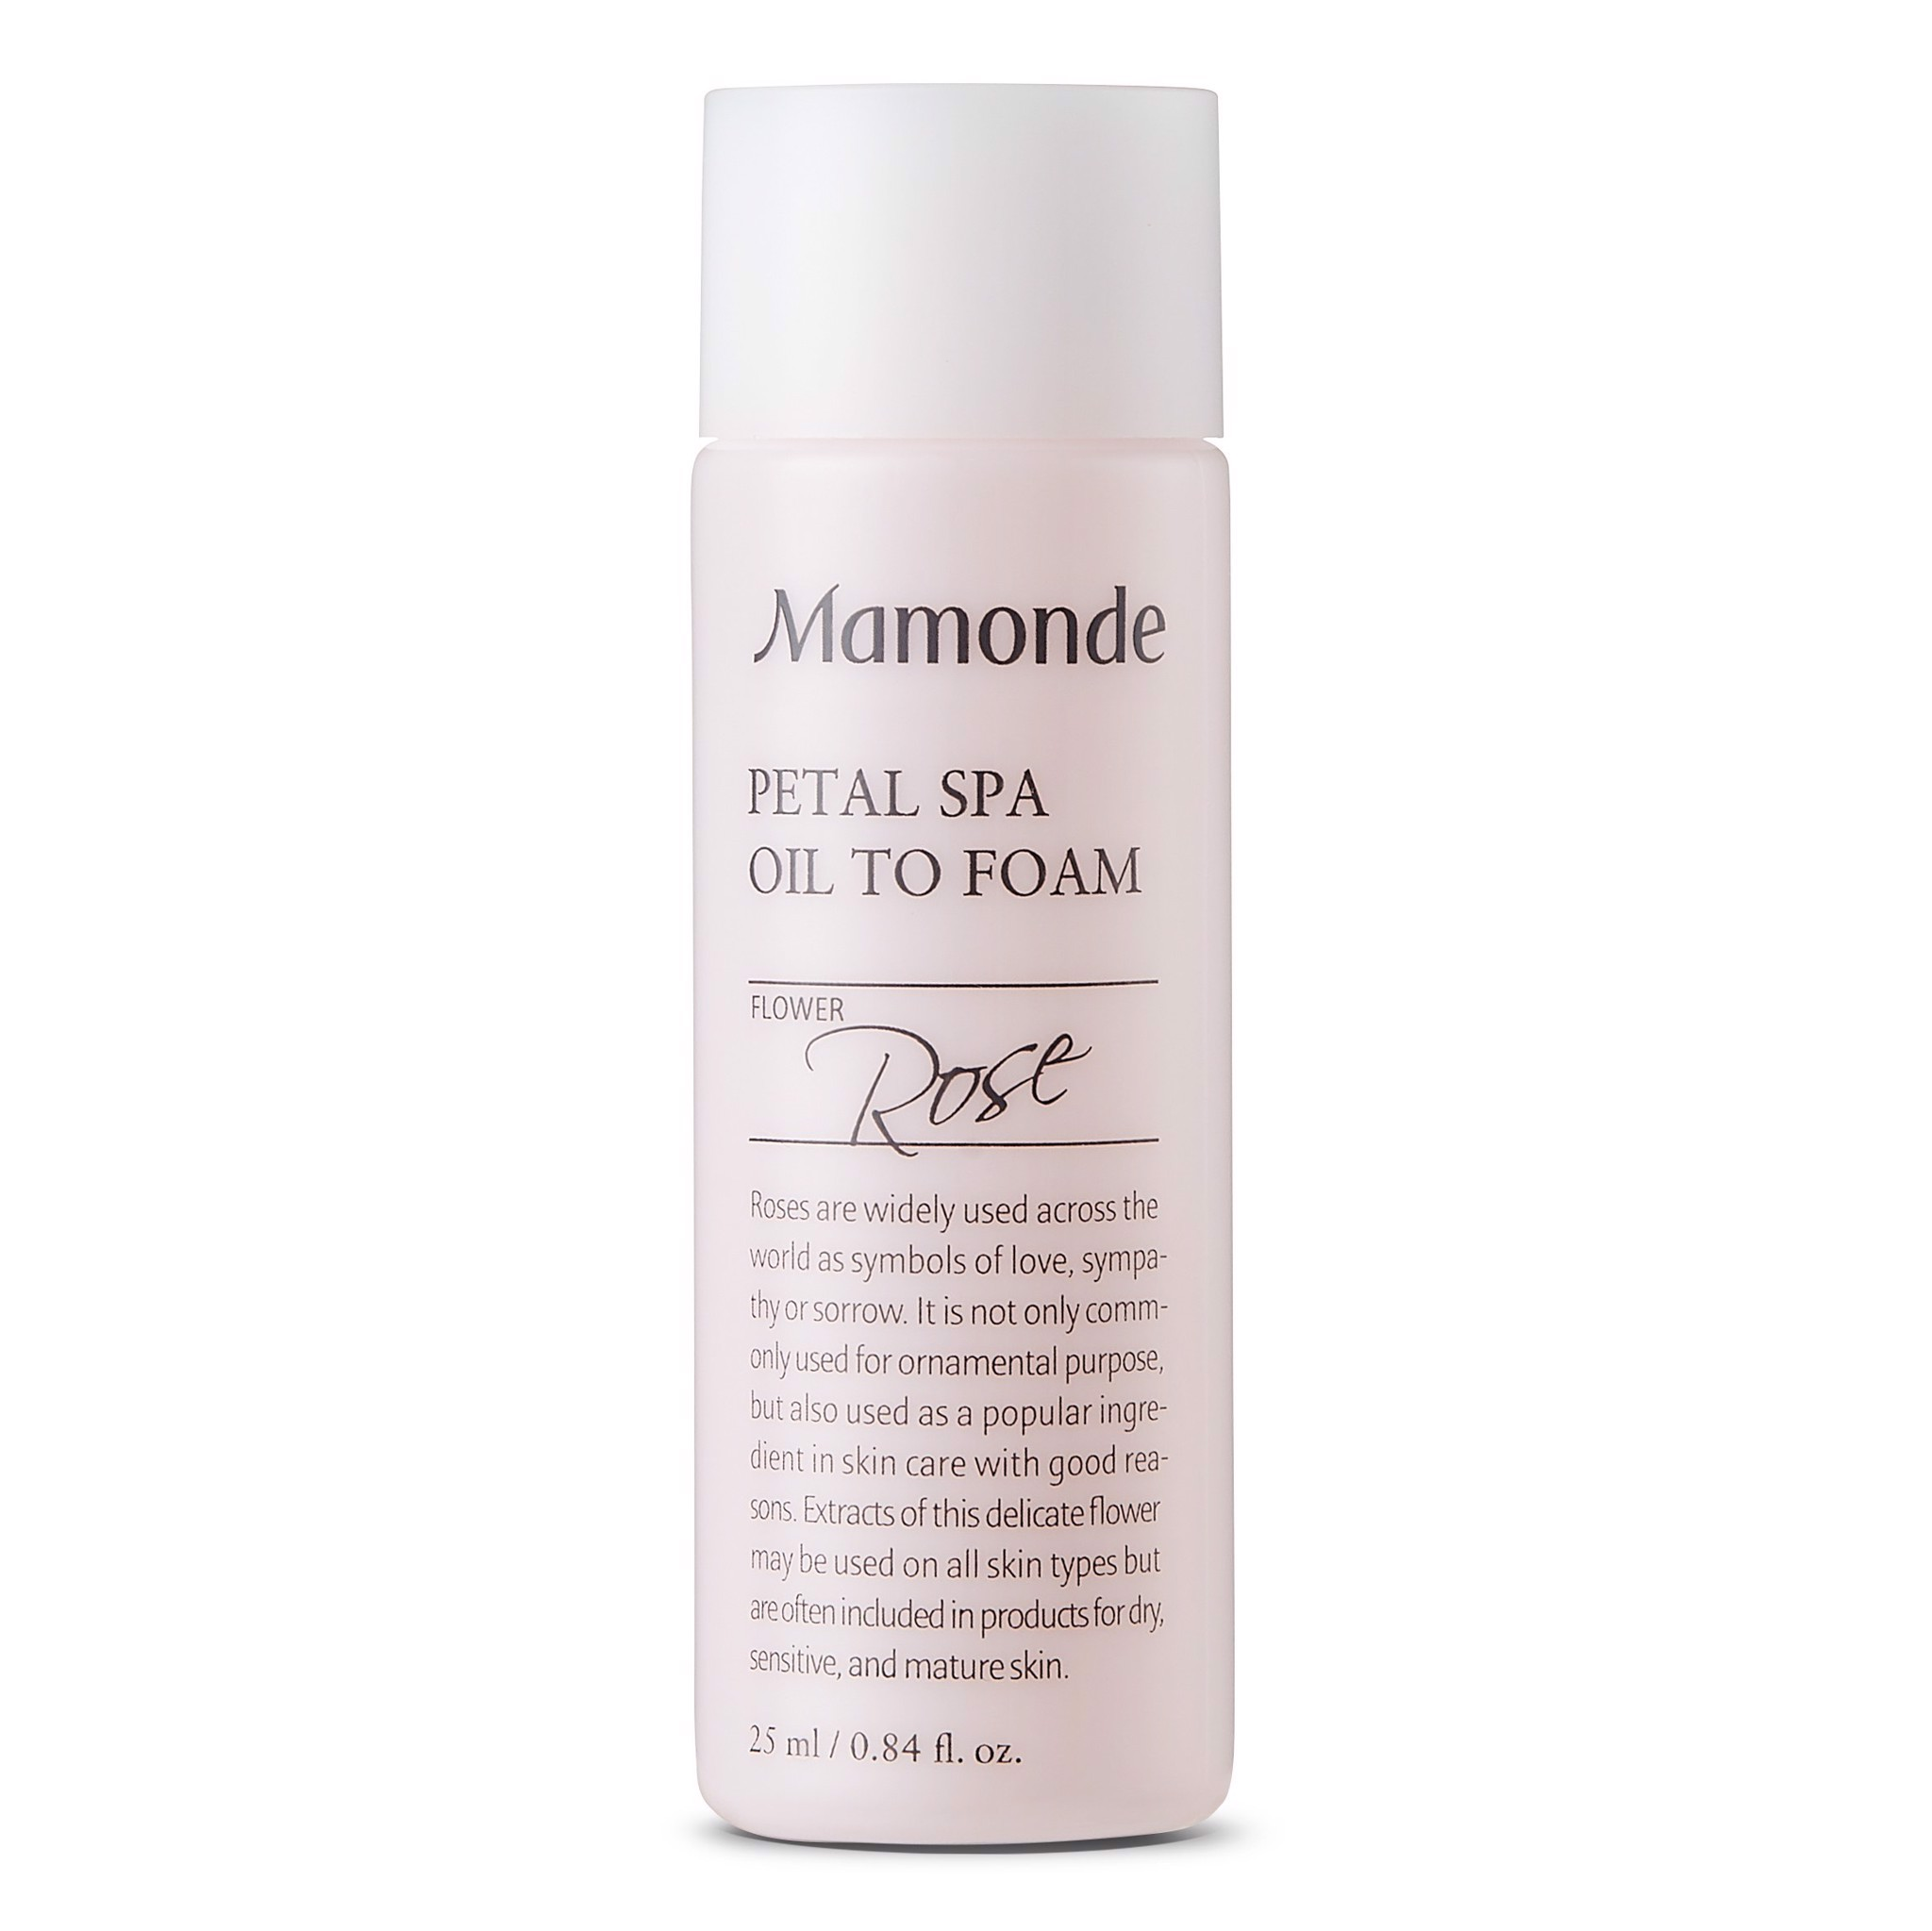 (Mini Size) Sữa rửa mặt Mamonde Petal Spa Oil To Foam 25Ml